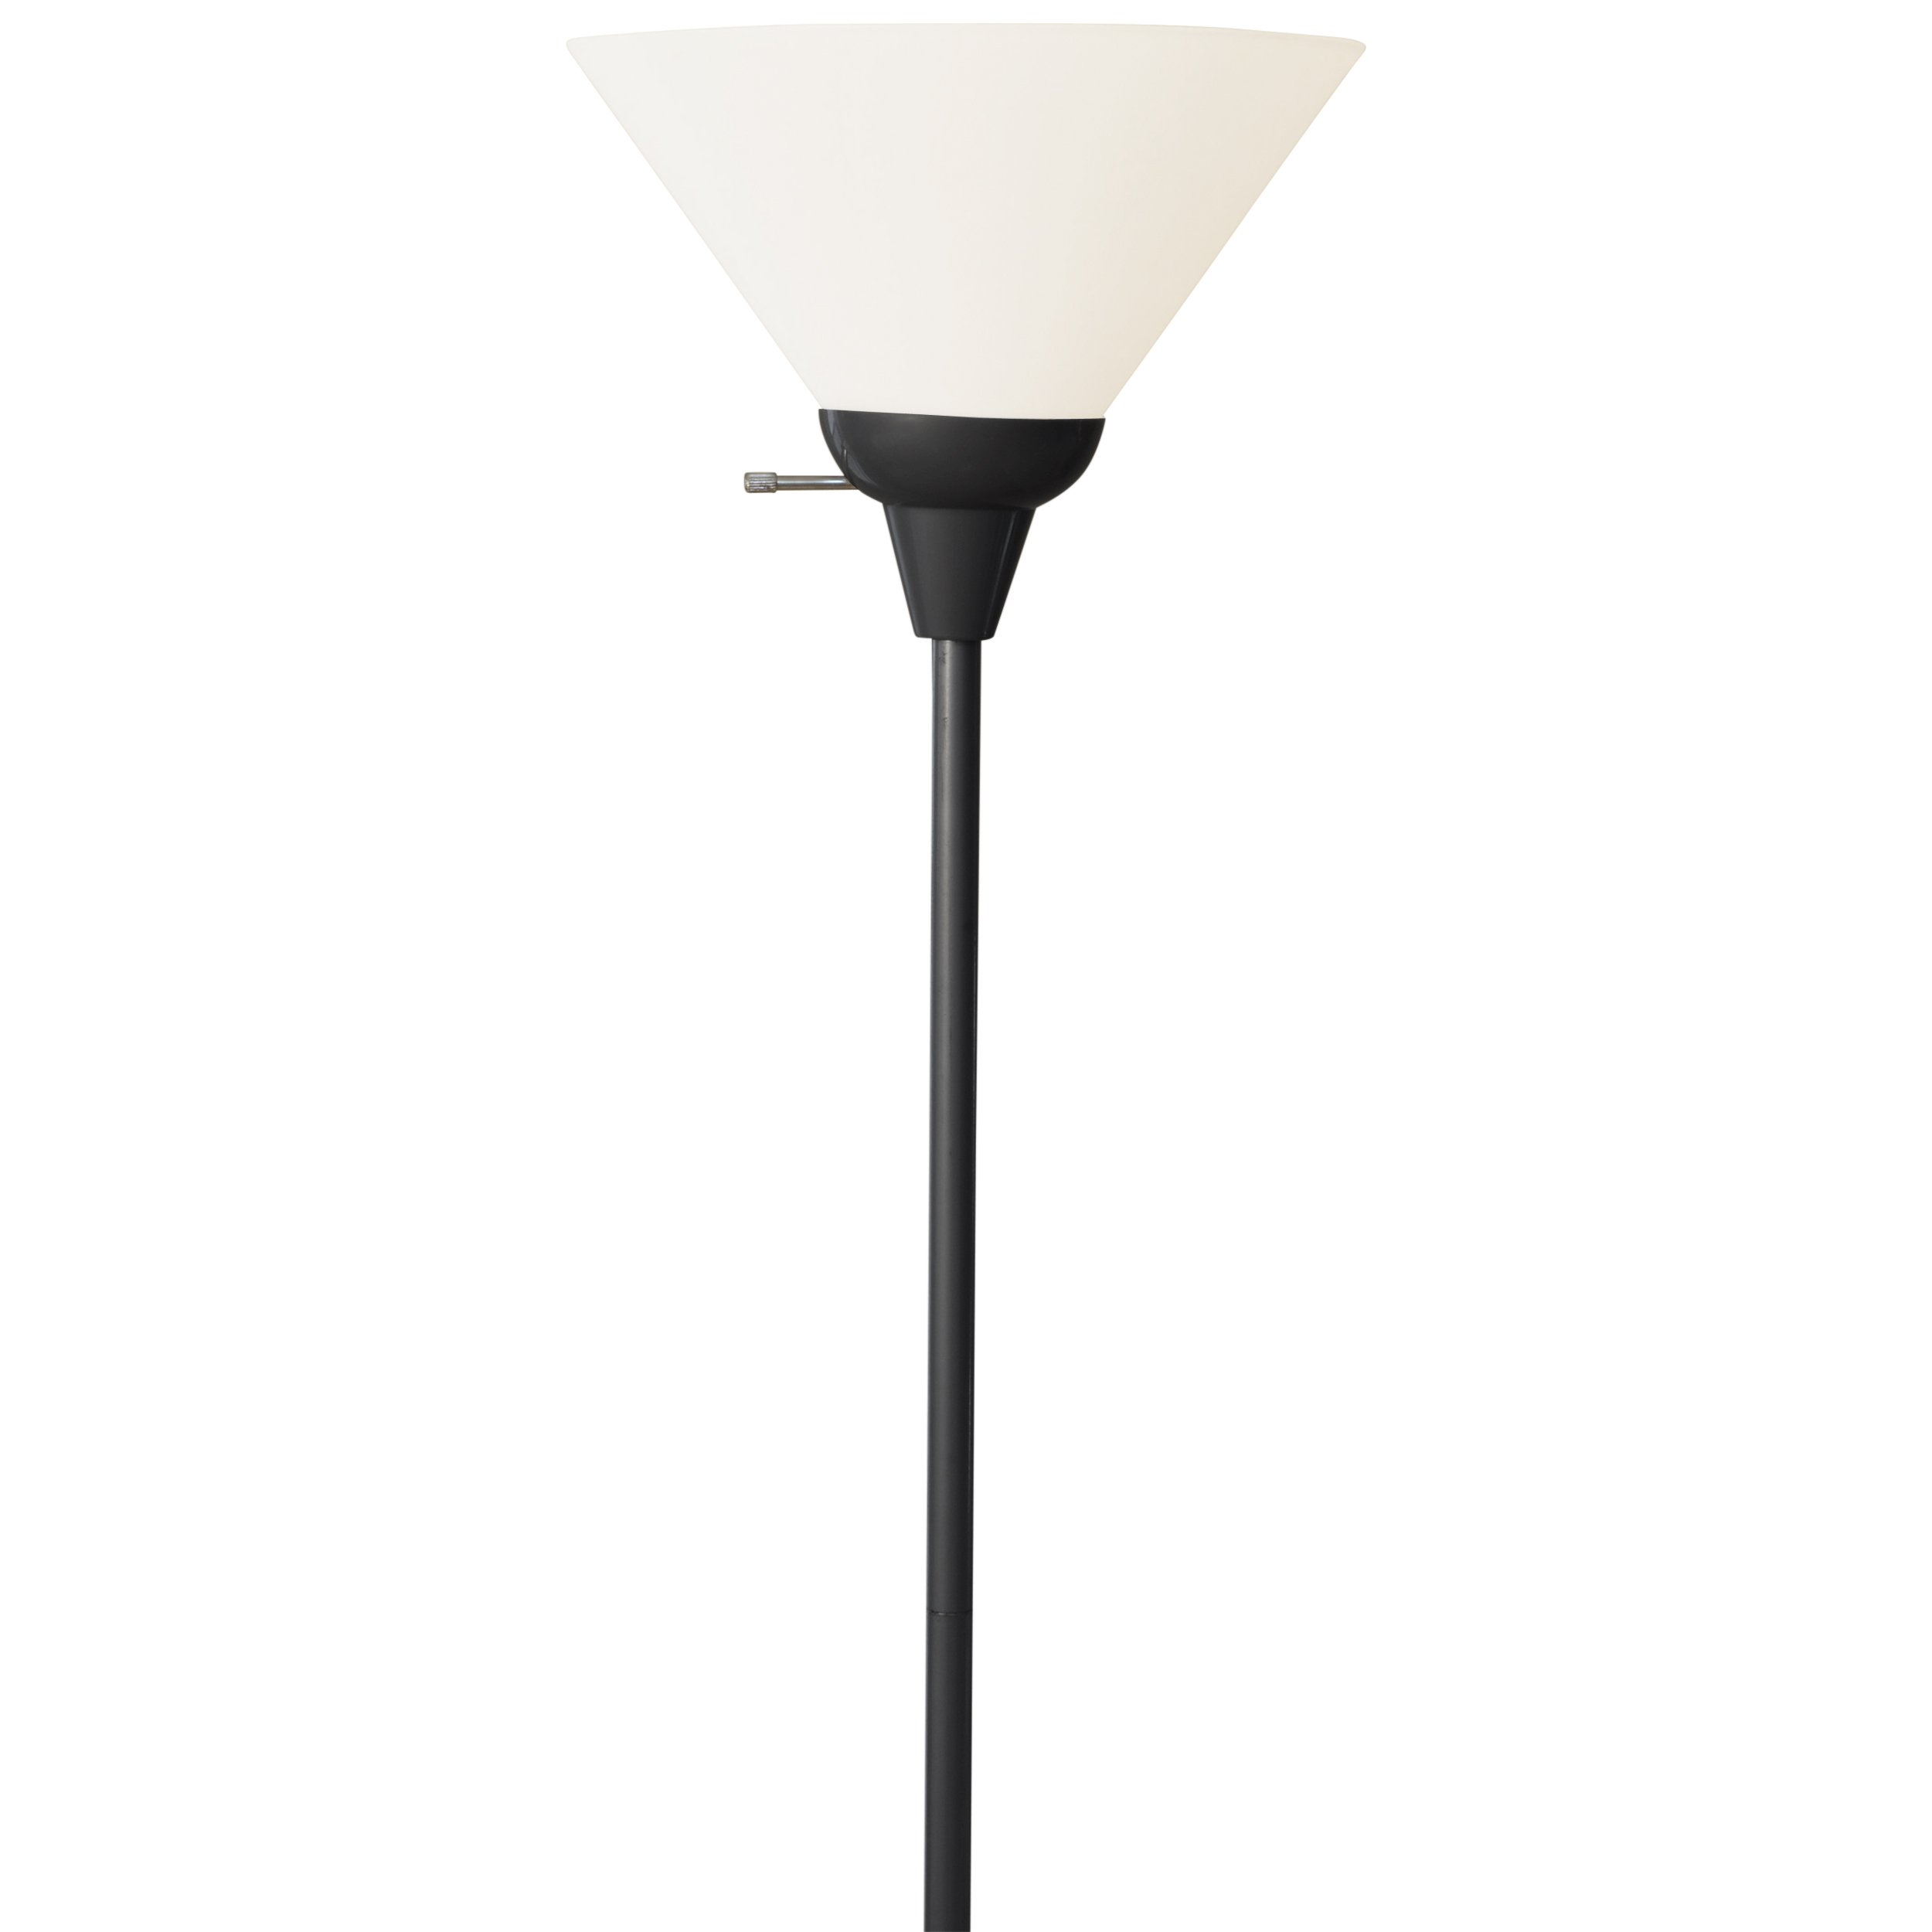 Light Accents 6113-21 Floor Lamp 72'' Tall with White Shade (Black)